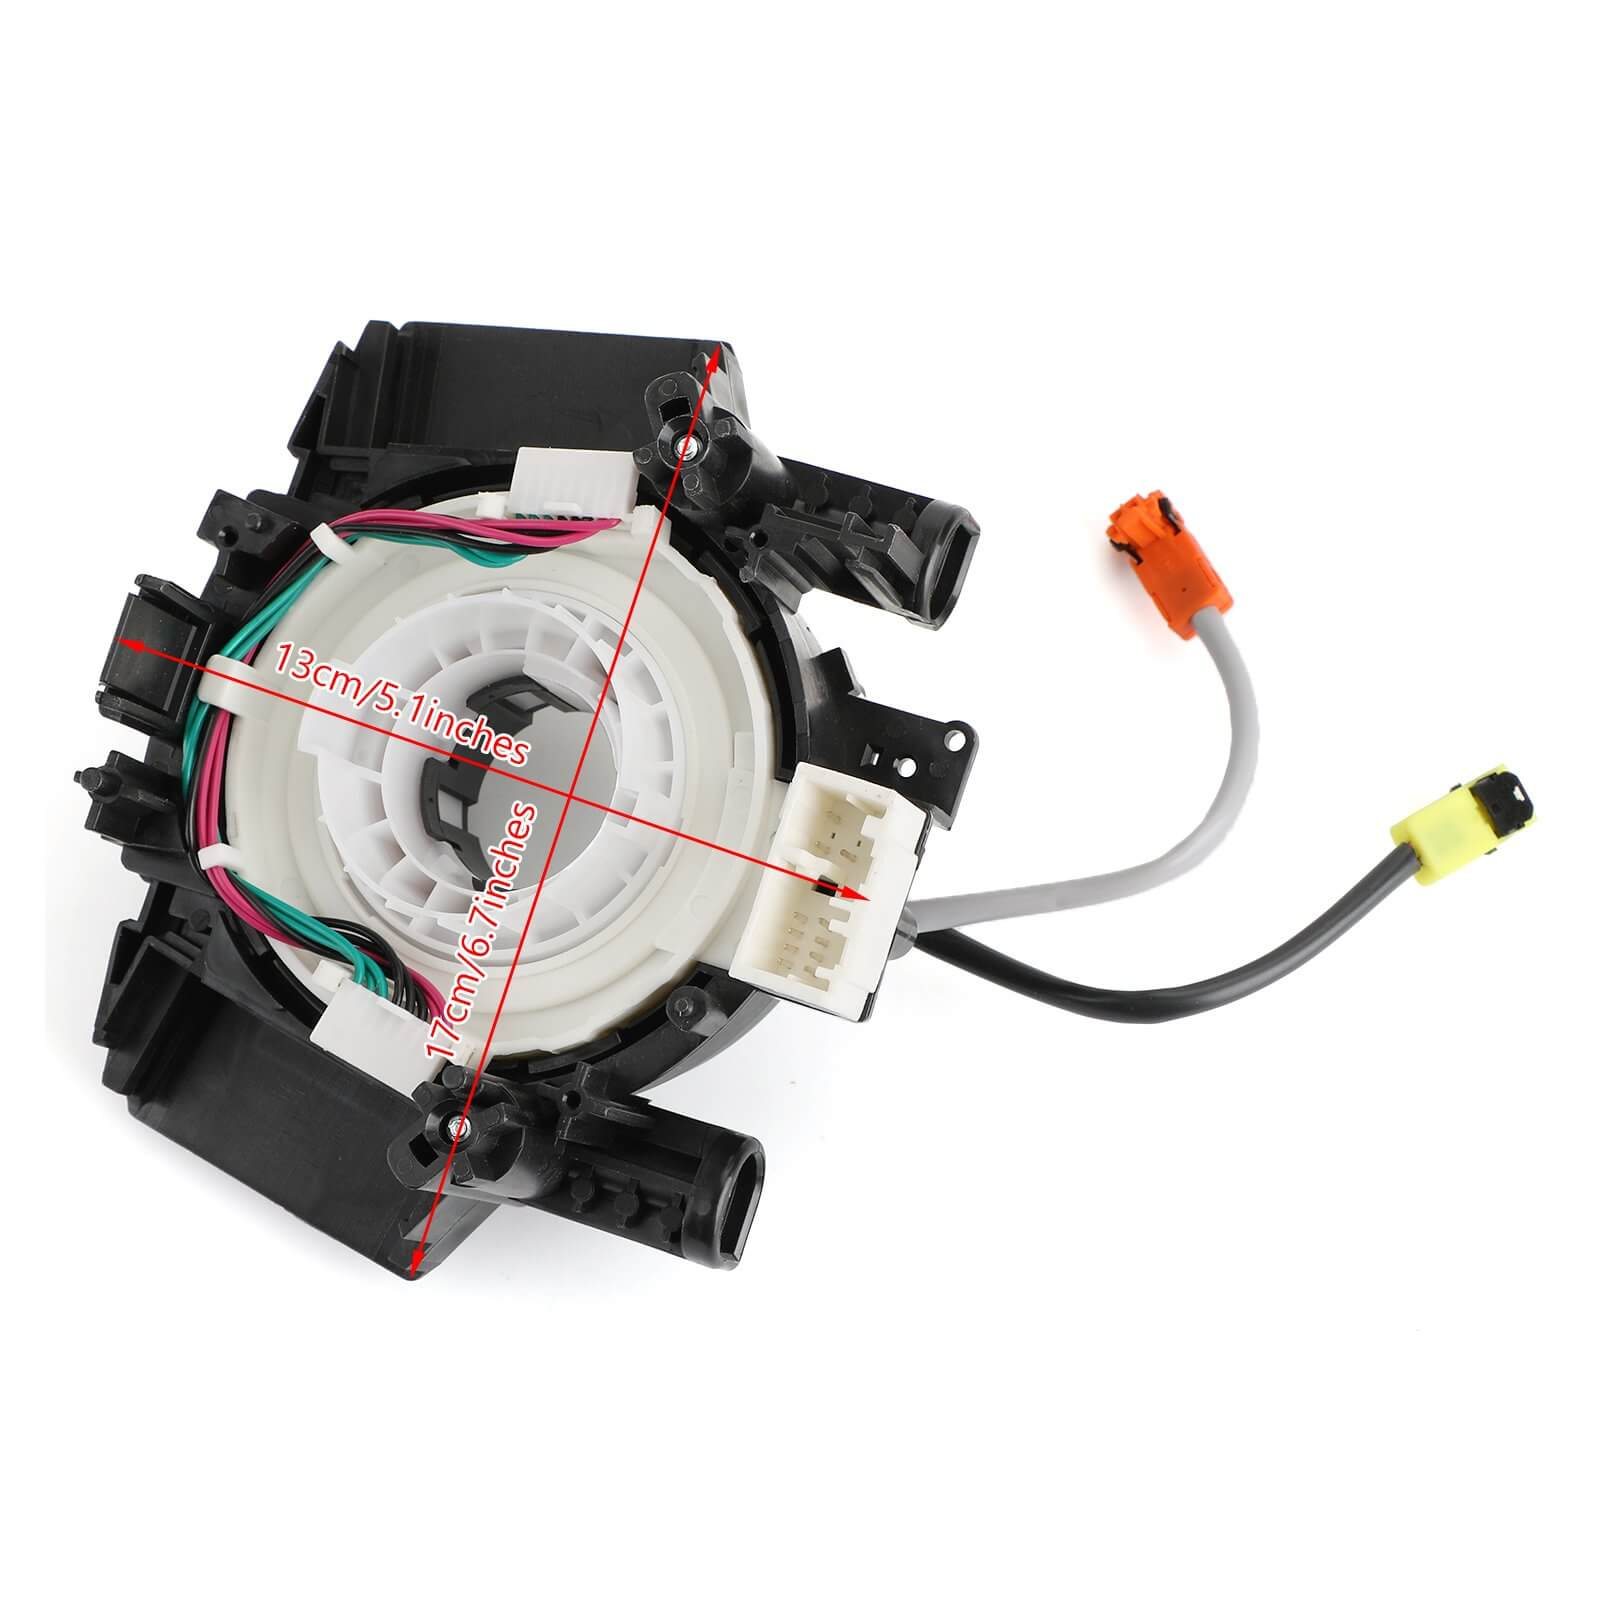 Clock Spring Airbag Spiral Cable for Nissan Versa Murano Rogue B5567-CB66A Generic